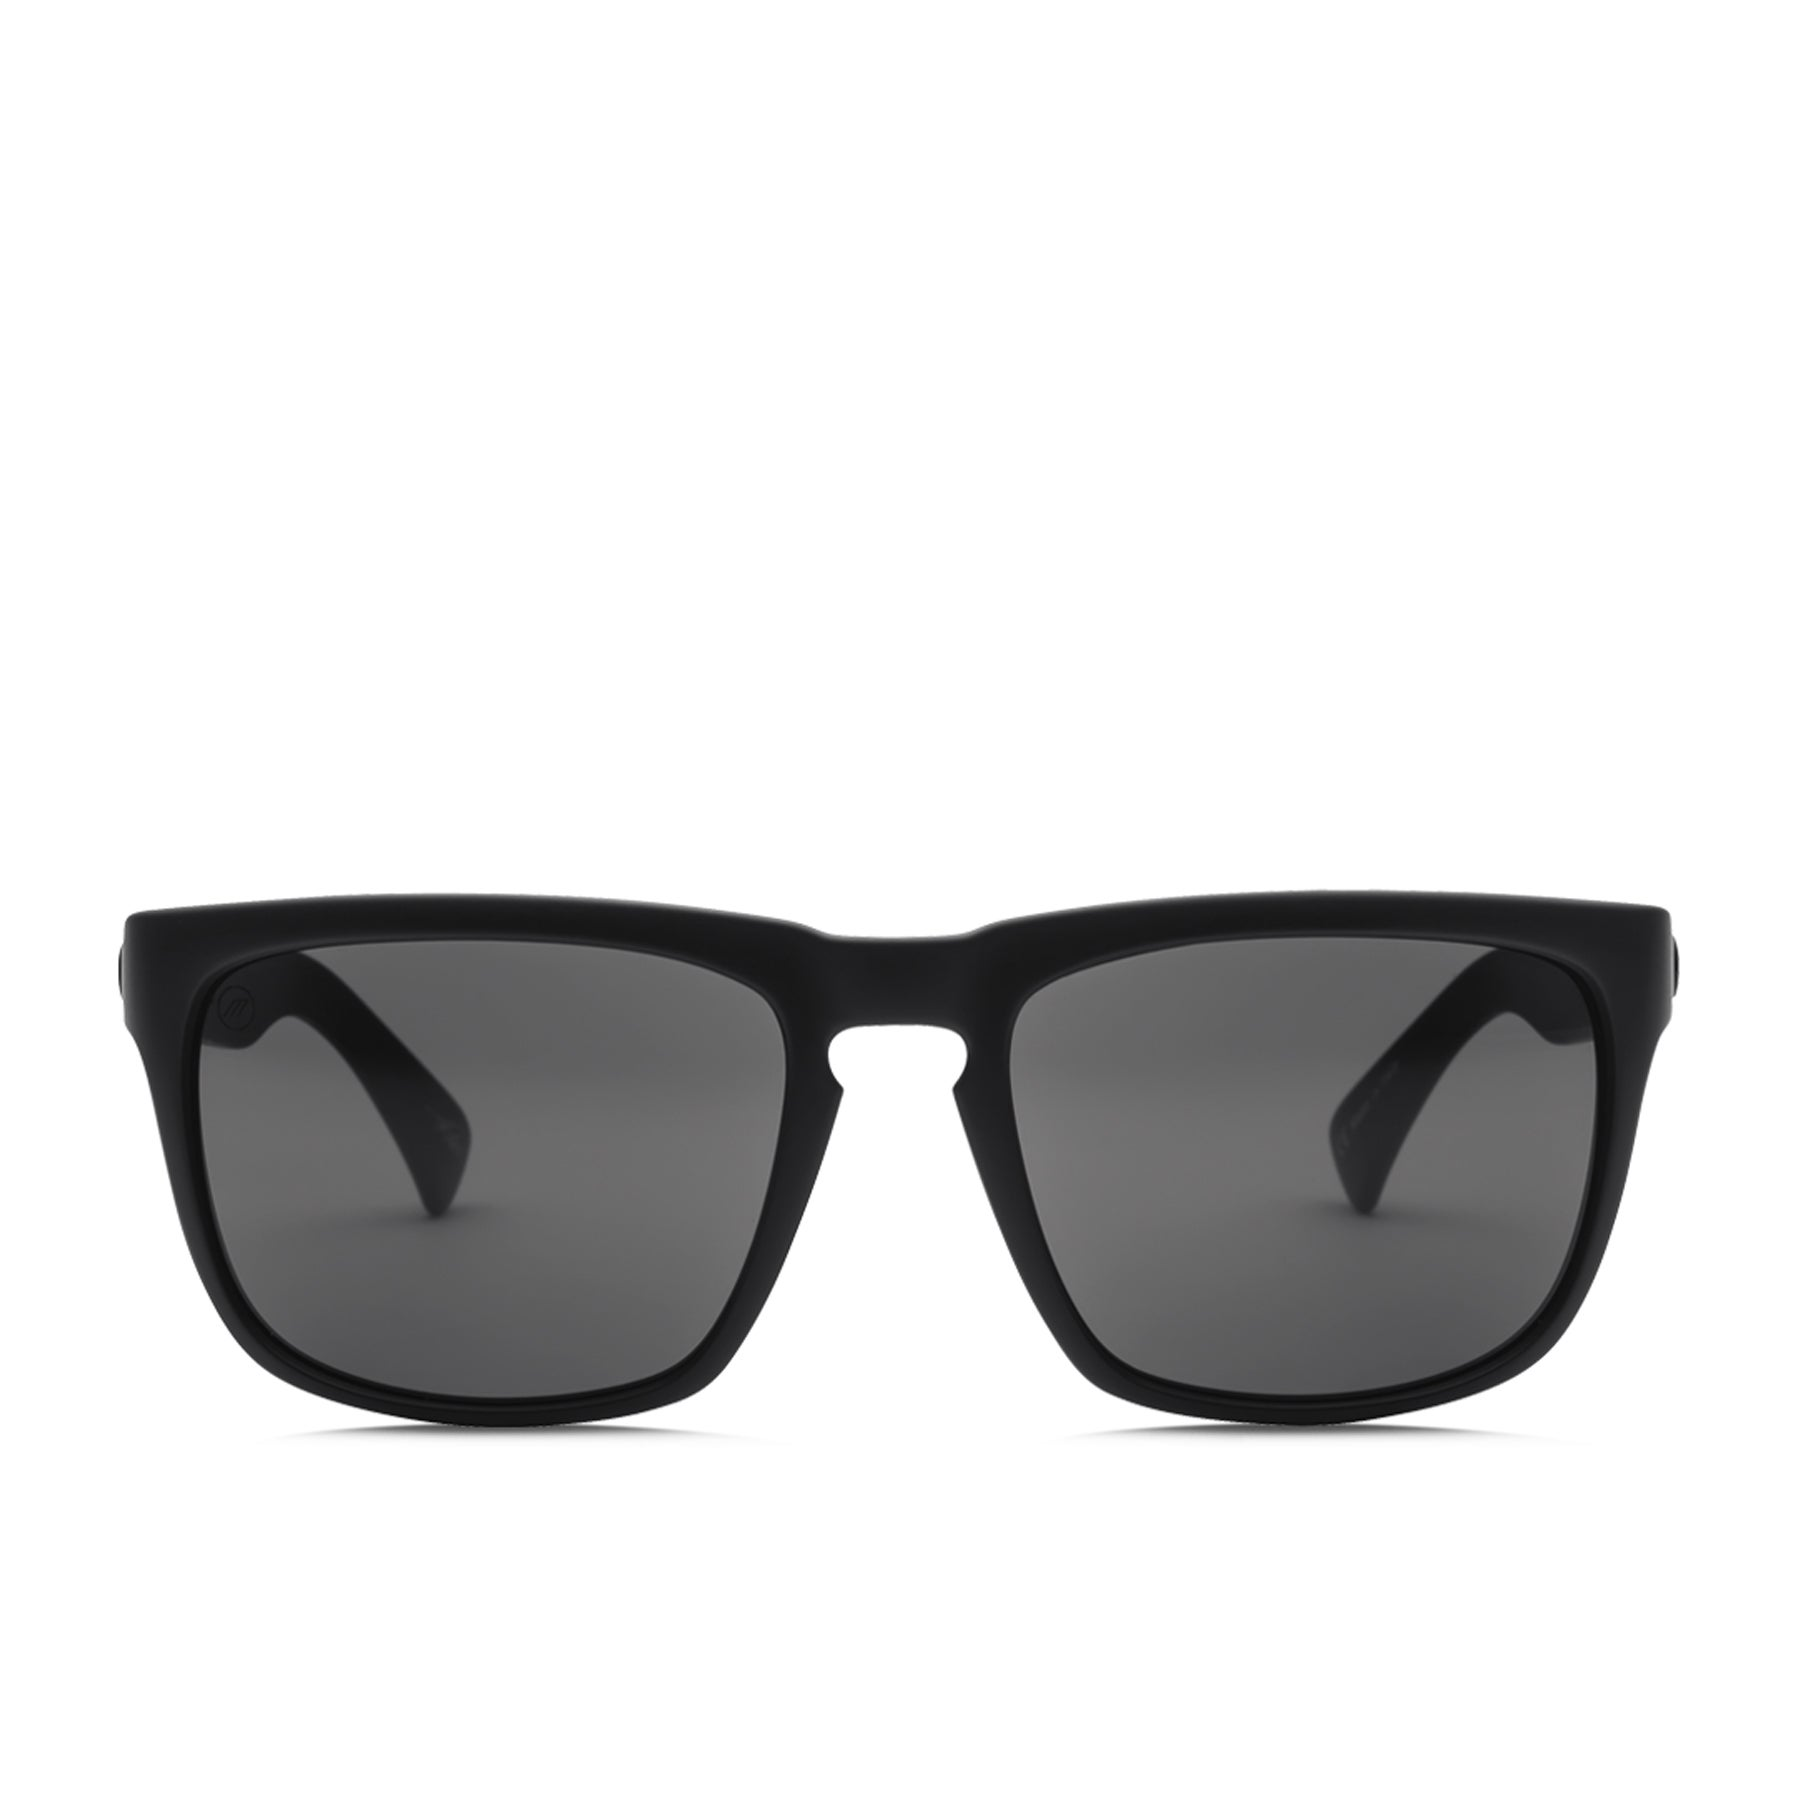 Electric Knoxville Sunglasses - Matte Black Ohm Grey